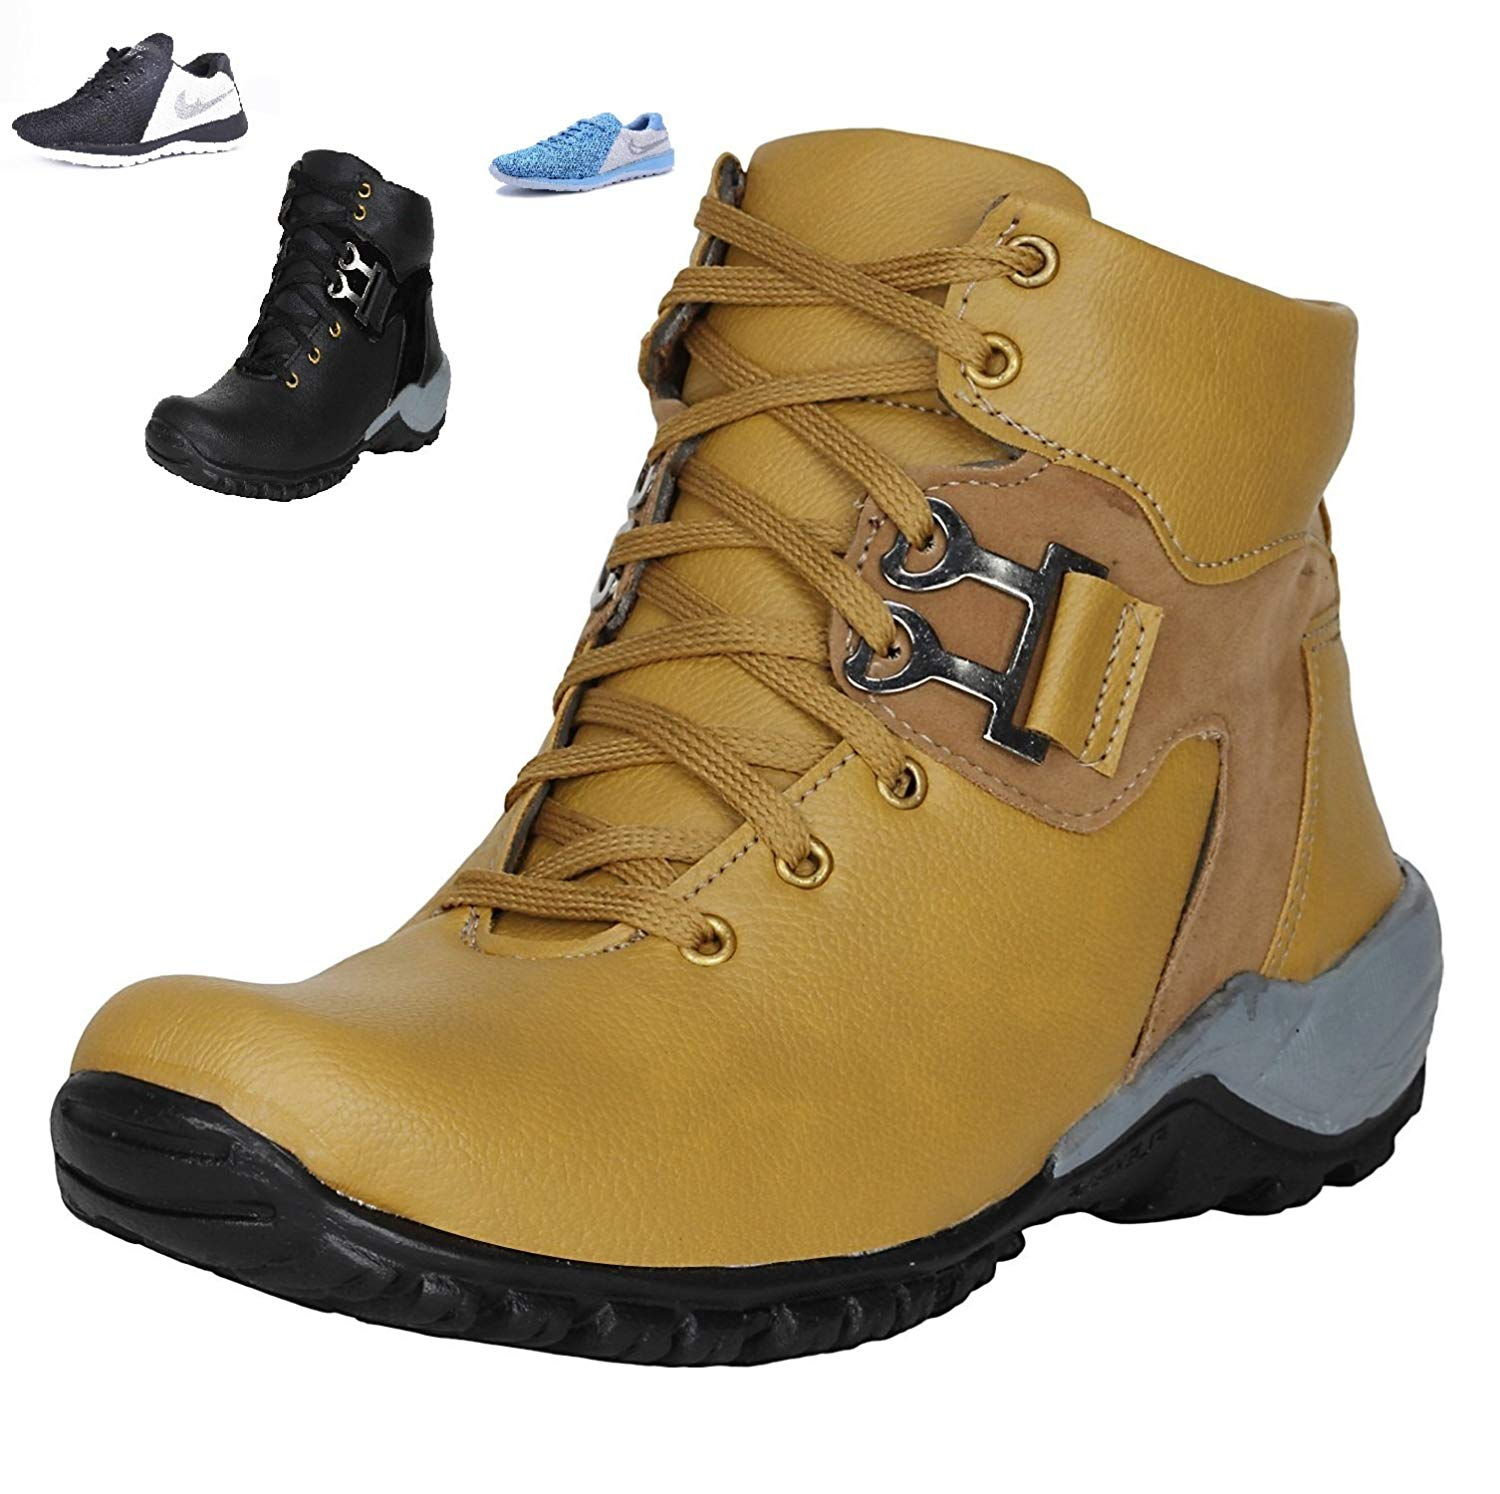 (Size 6) Arr Fashions Men's Trekking and Hiking Boots- Amazon